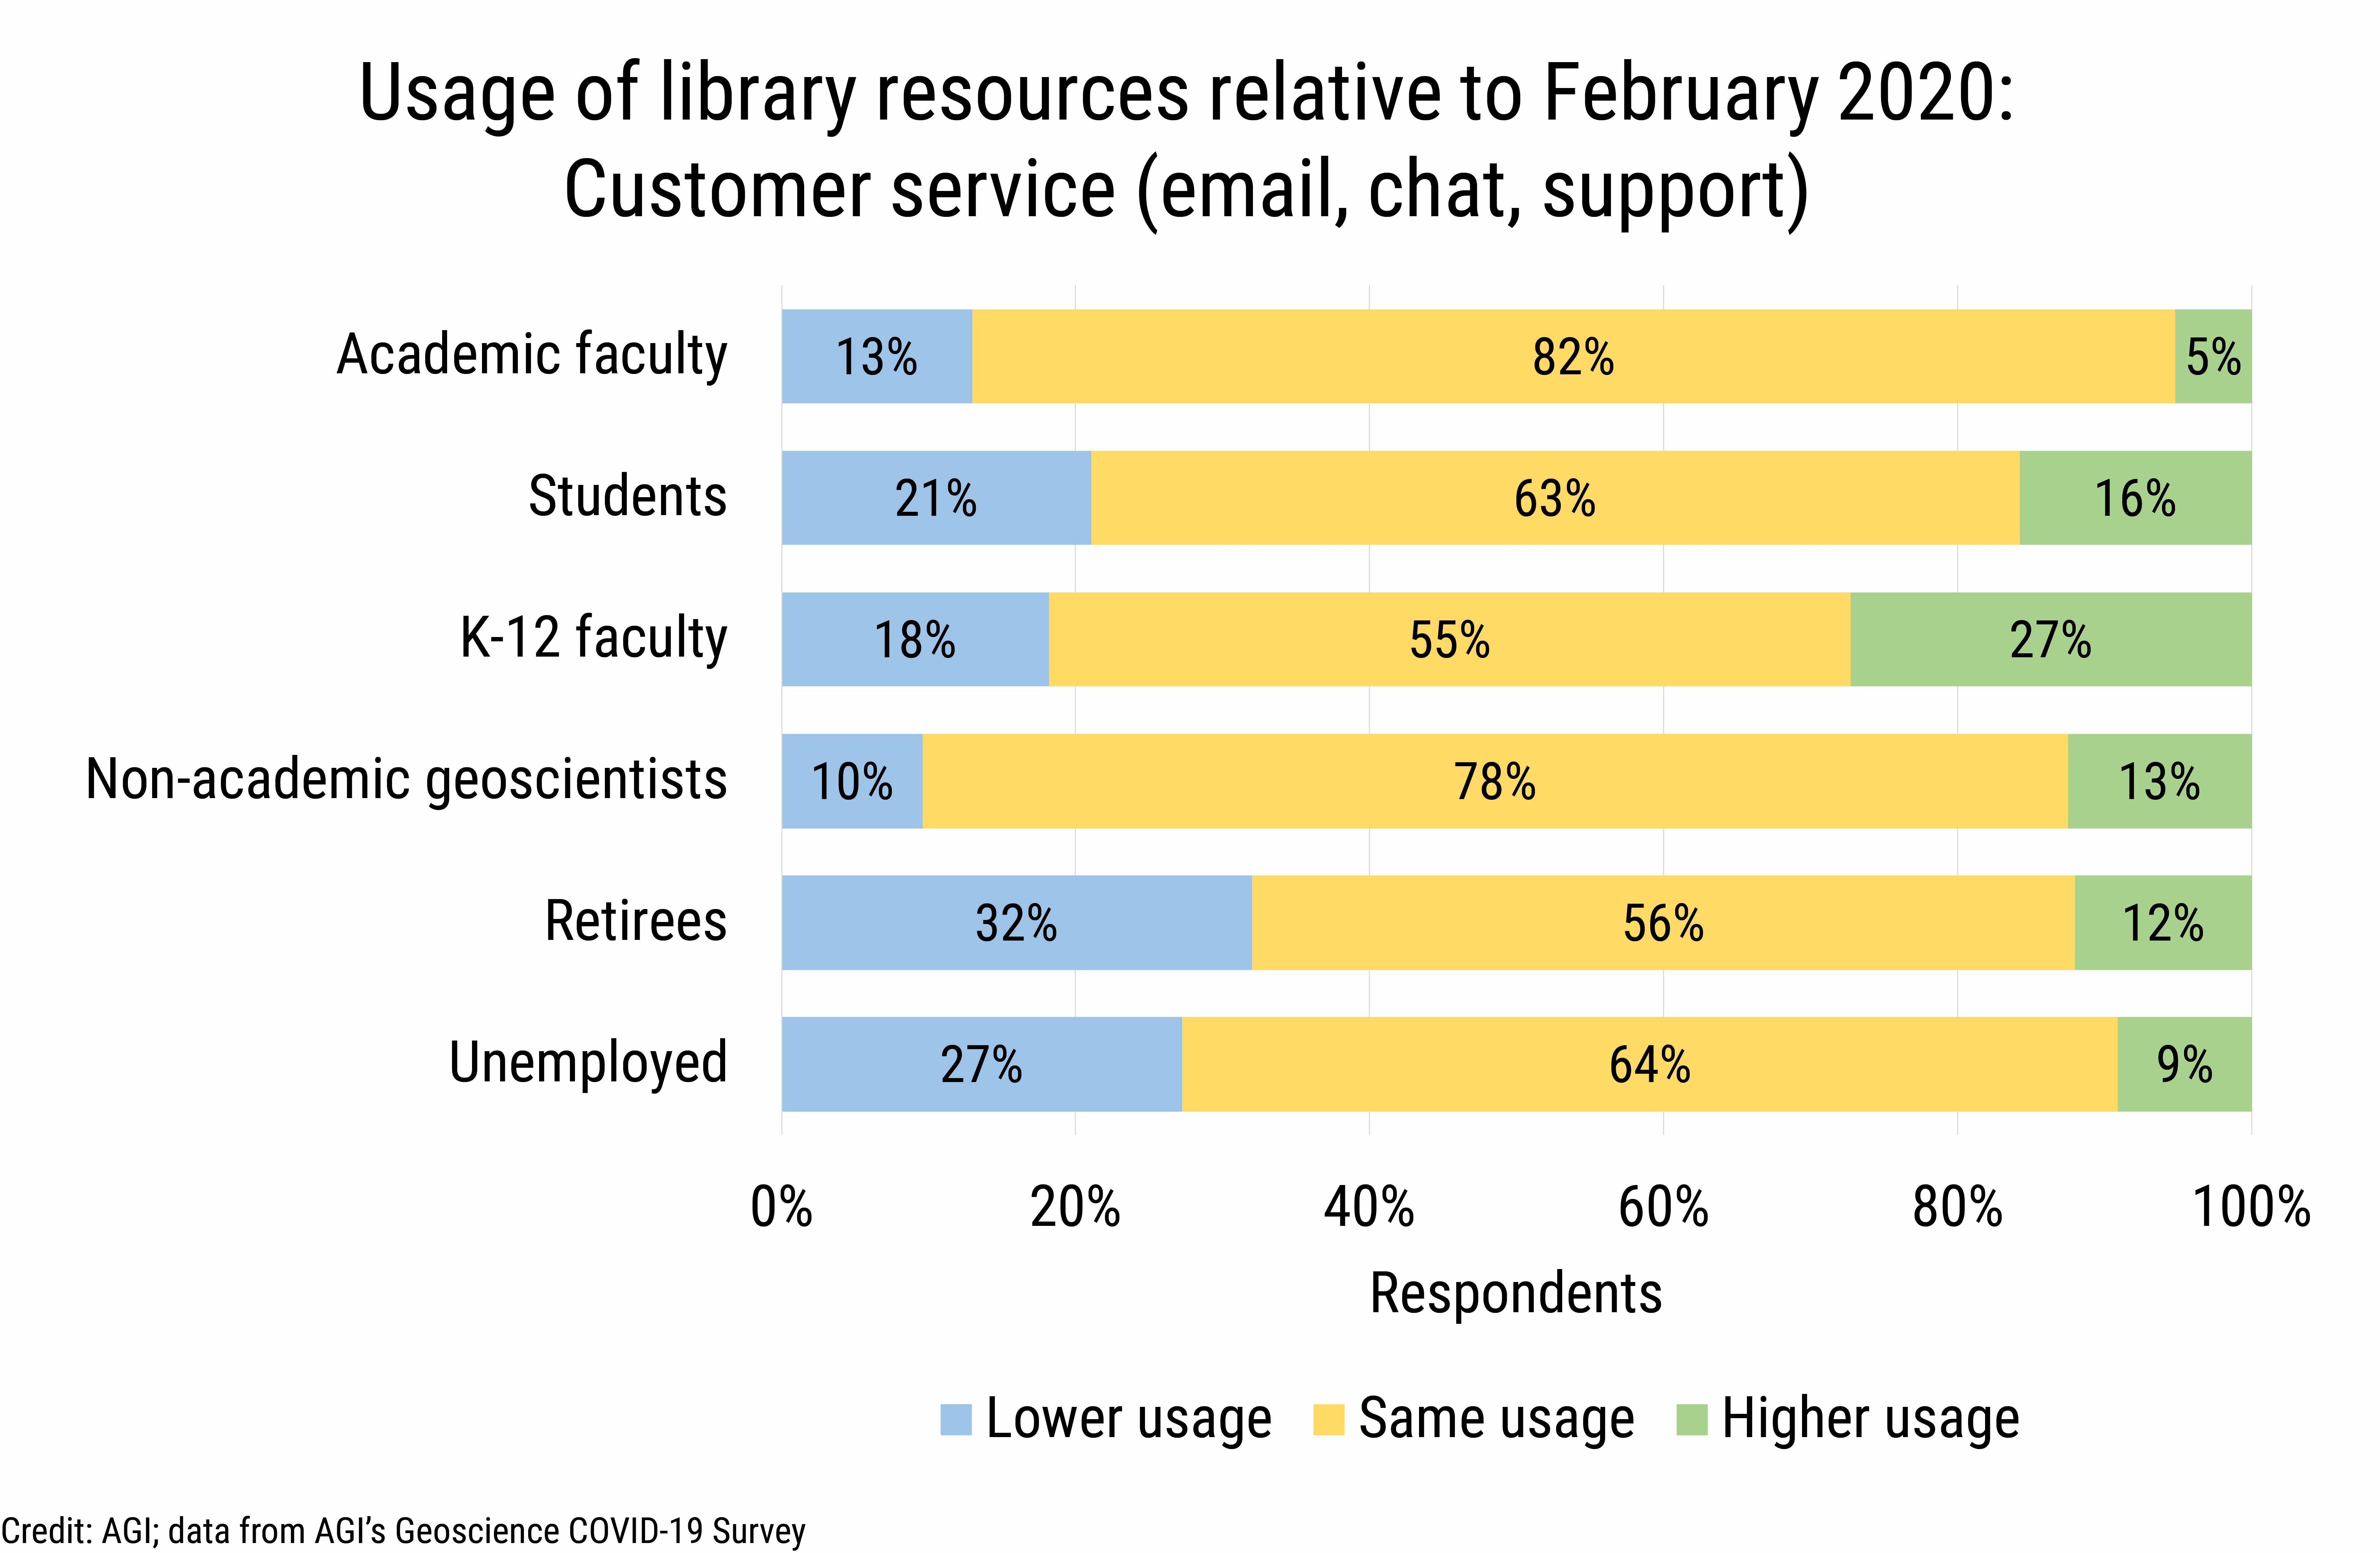 DB_2020-026 chart 04: Library resource usage by cohort: customer service (Credit: AGI; data from AGI's Geoscience COVID-19 Survey)